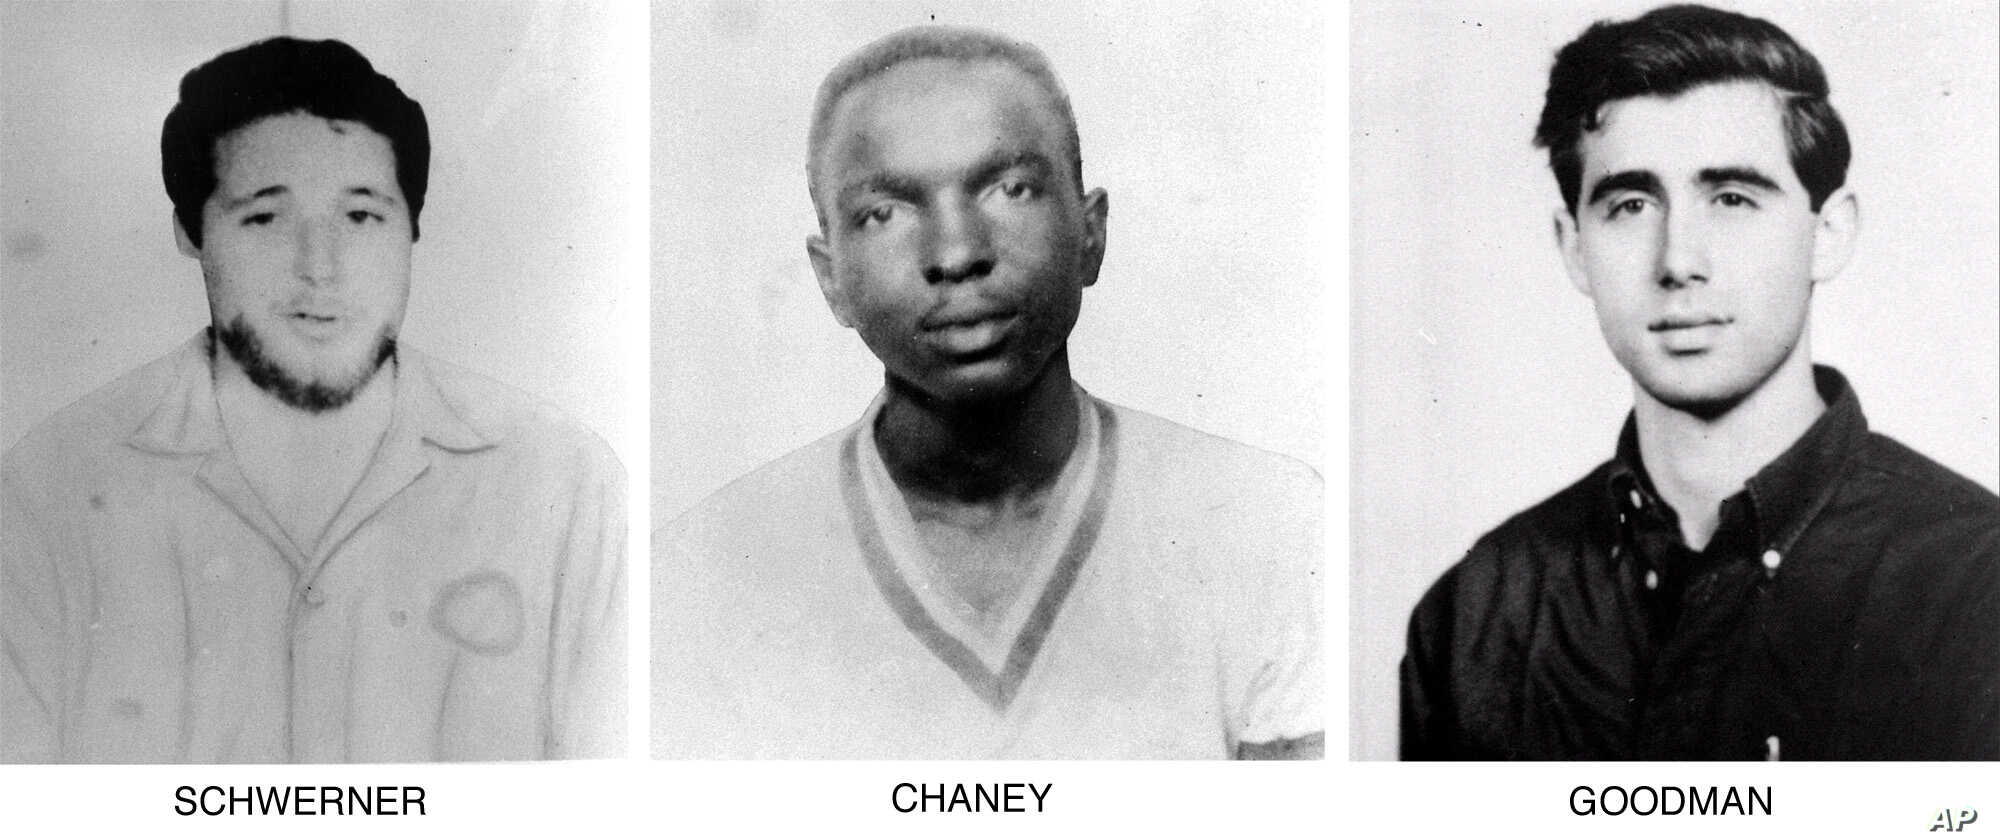 On June 29, 1964, the FBI began distributing these pictures of civil rights workers, from left, Michael Schwerner, 24, of New York, James Chaney, 21, from Mississippi, and Andrew Goodman, 20, of New York, who disappeared near Philadelphia, Miss., Jun...